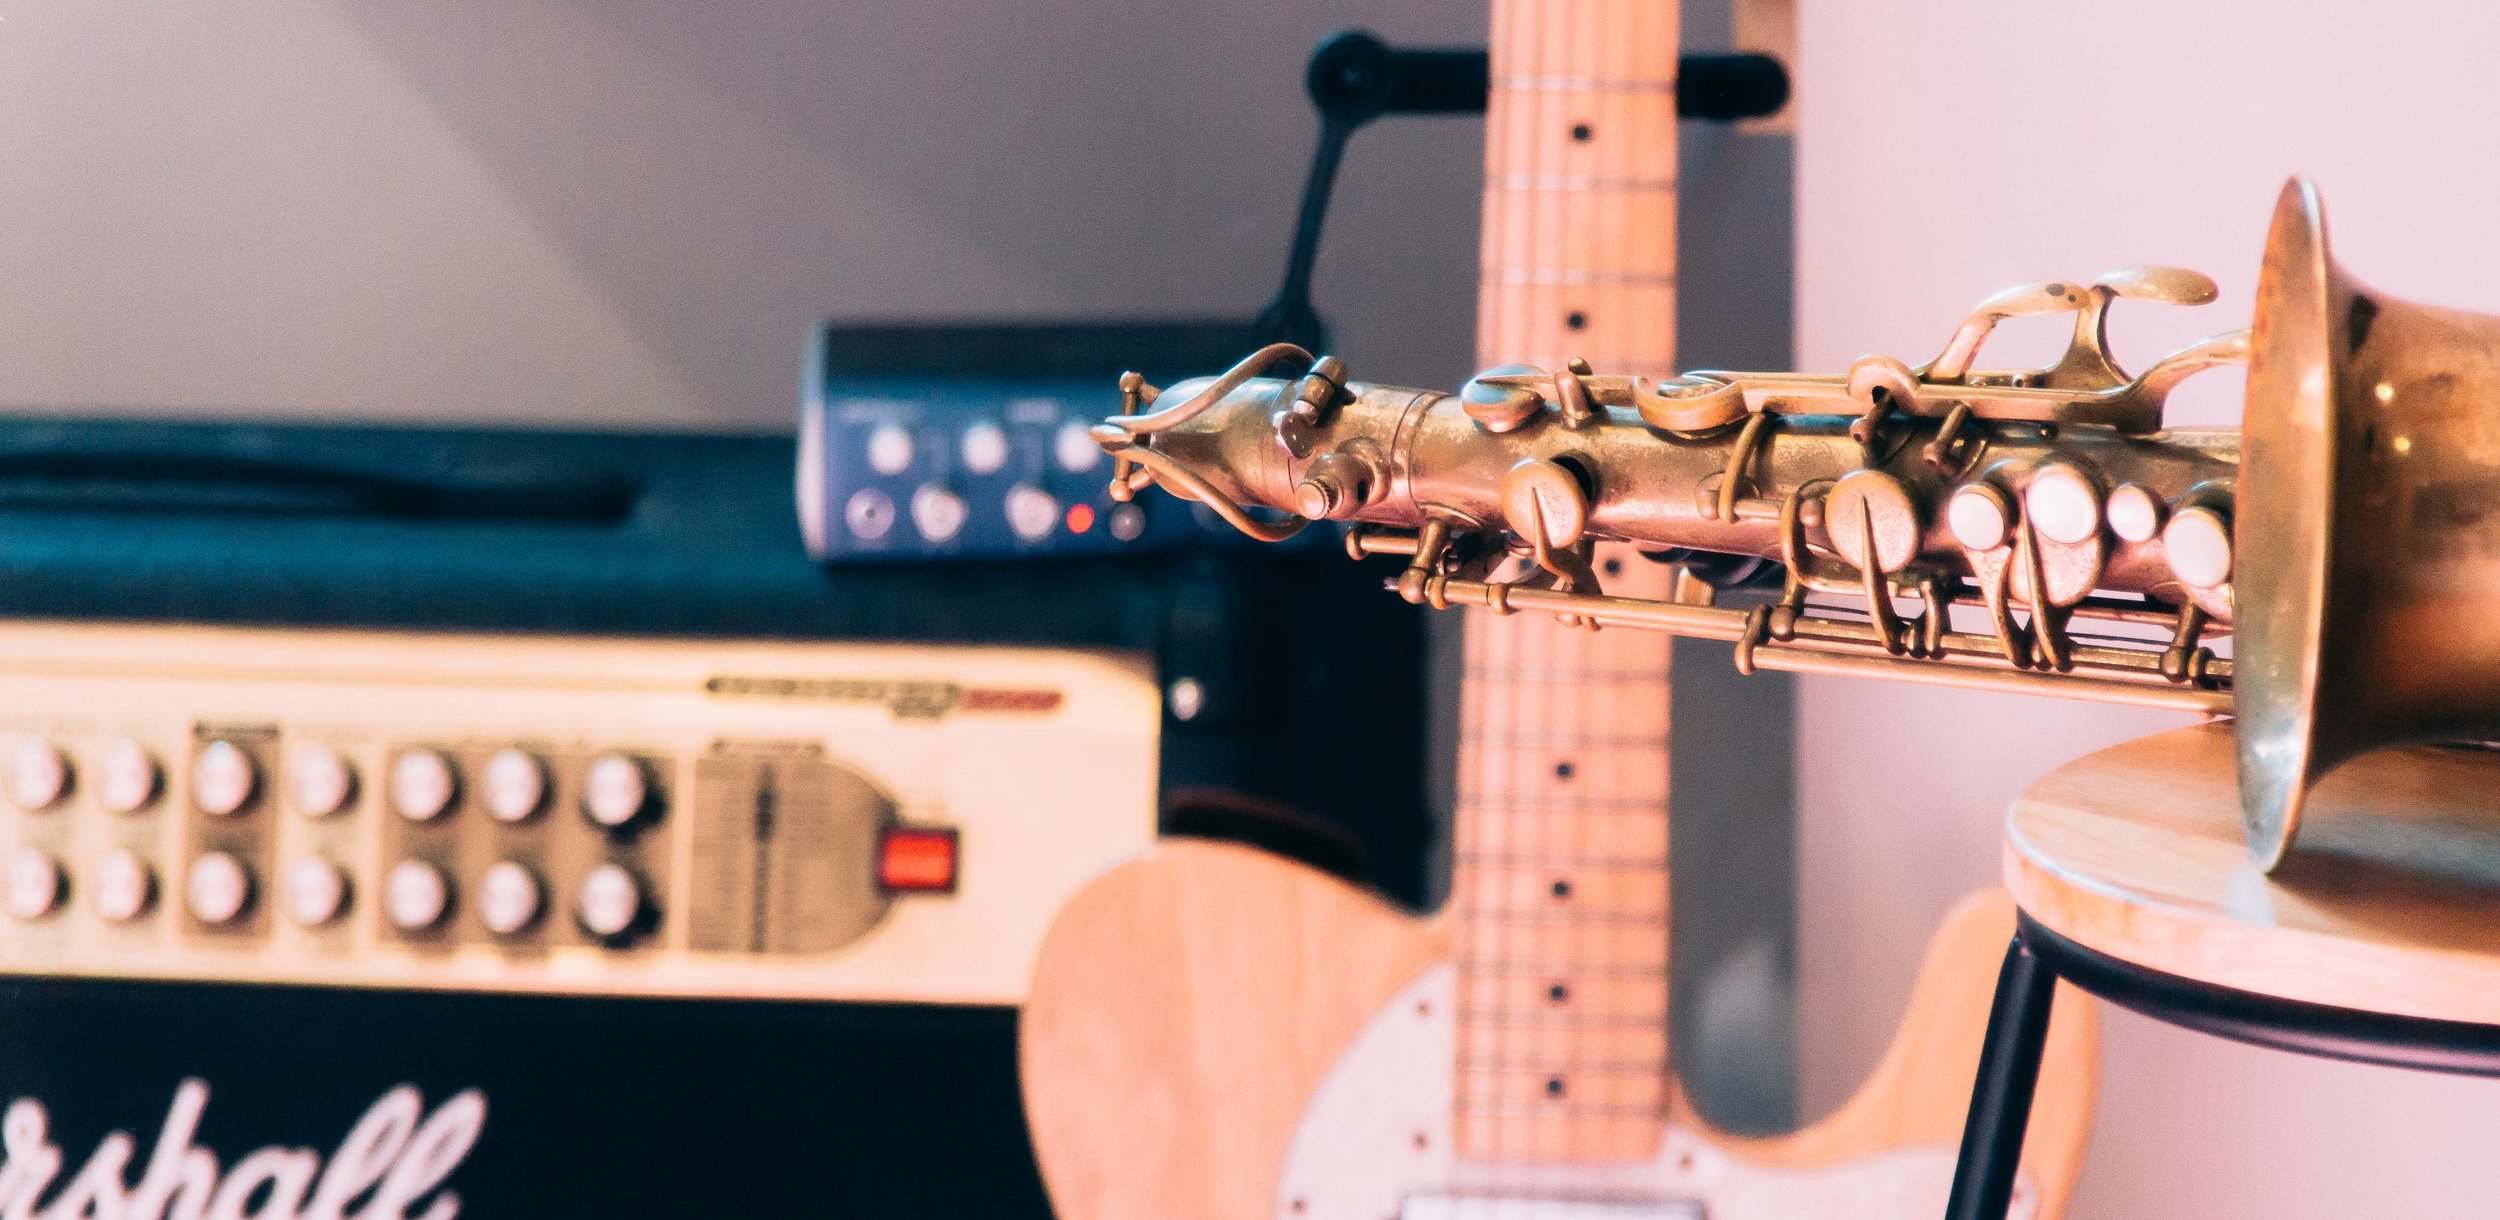 There is plenty of equipment for inspiration during lessons at Heavy Feet Studios in Wallsend, Newcastle